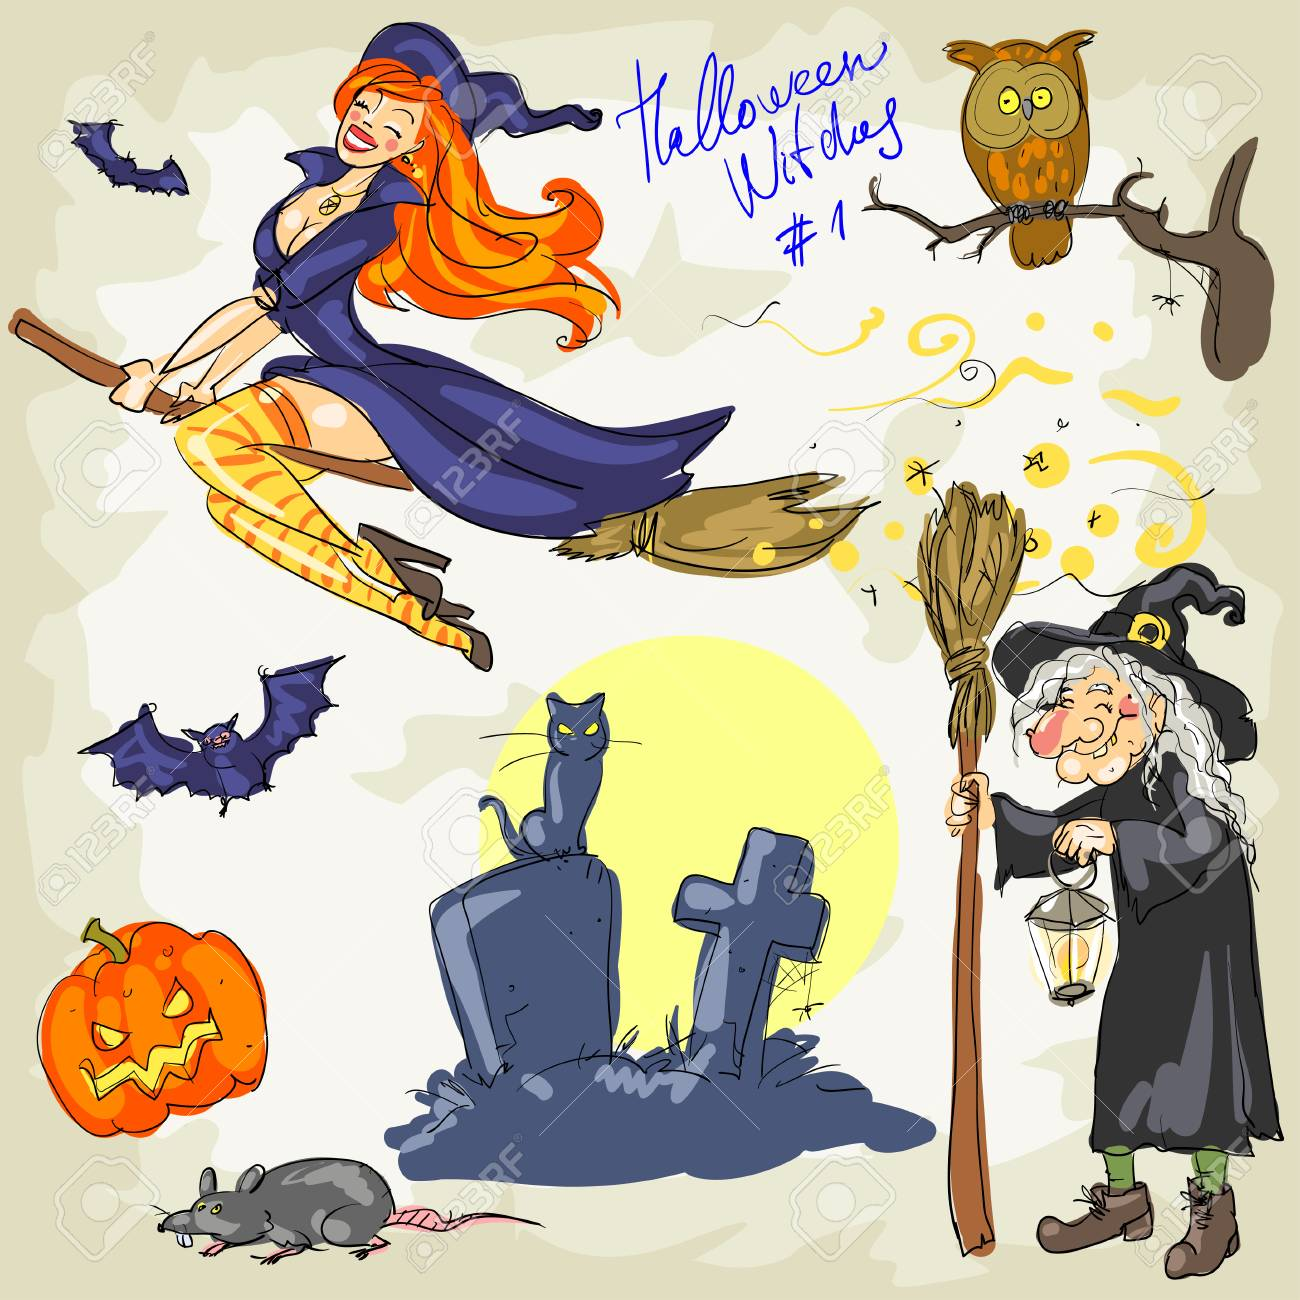 Halloween Witches - 2  Hand drawn collection of witches and witch